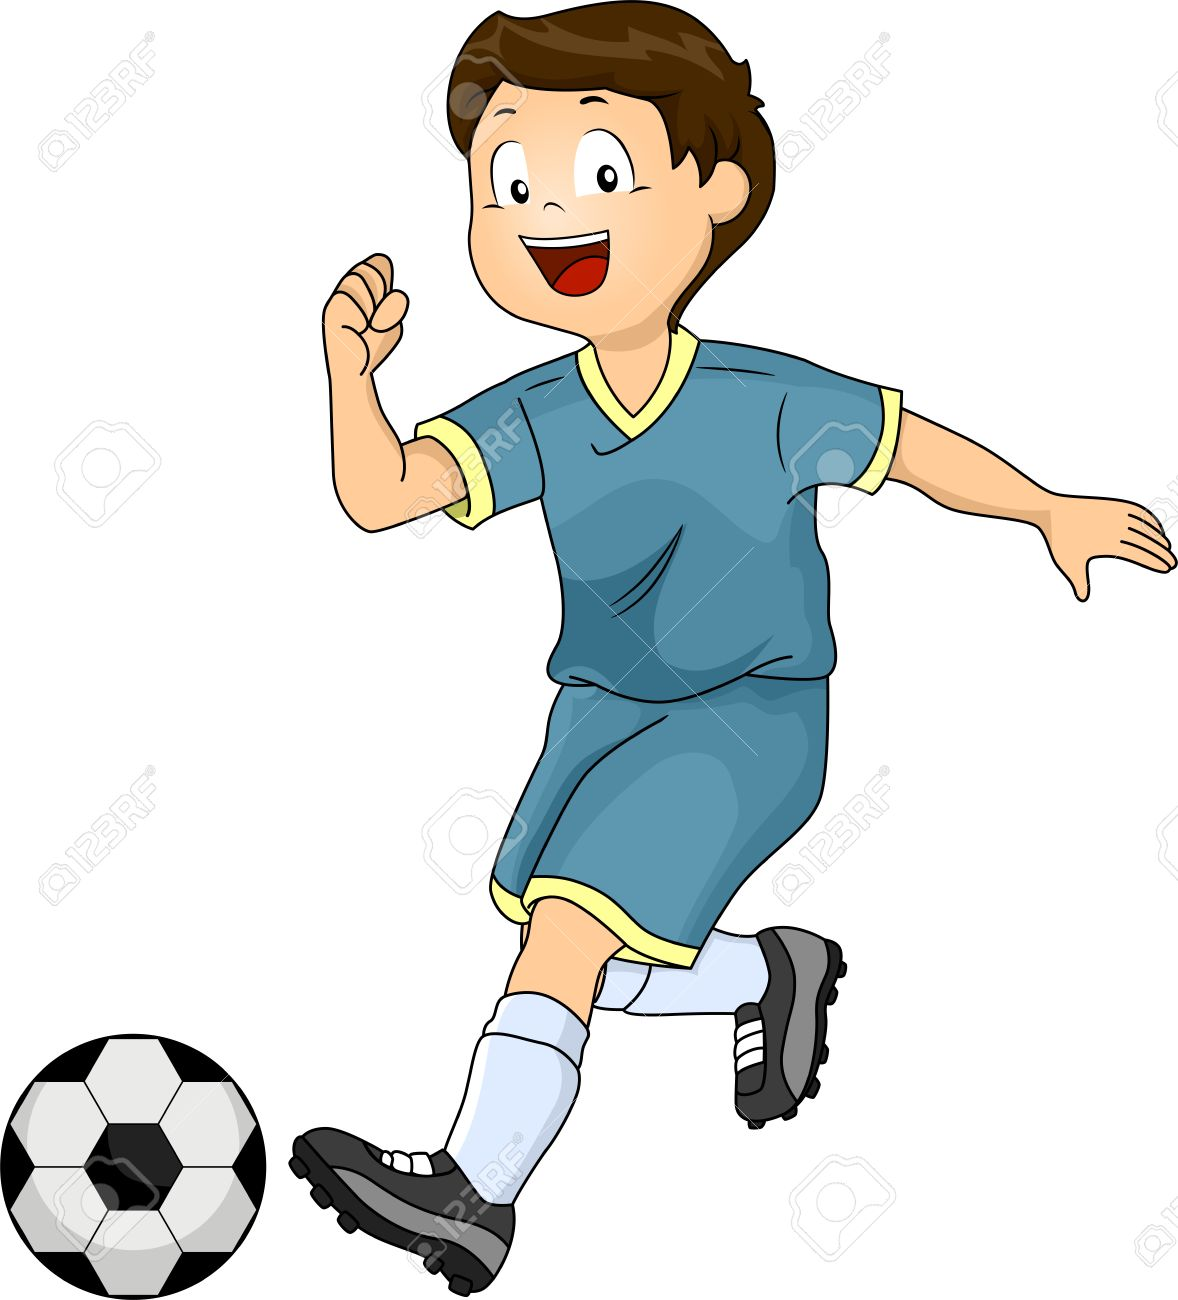 illustration of a little boy kicking a soccer ball stock photo